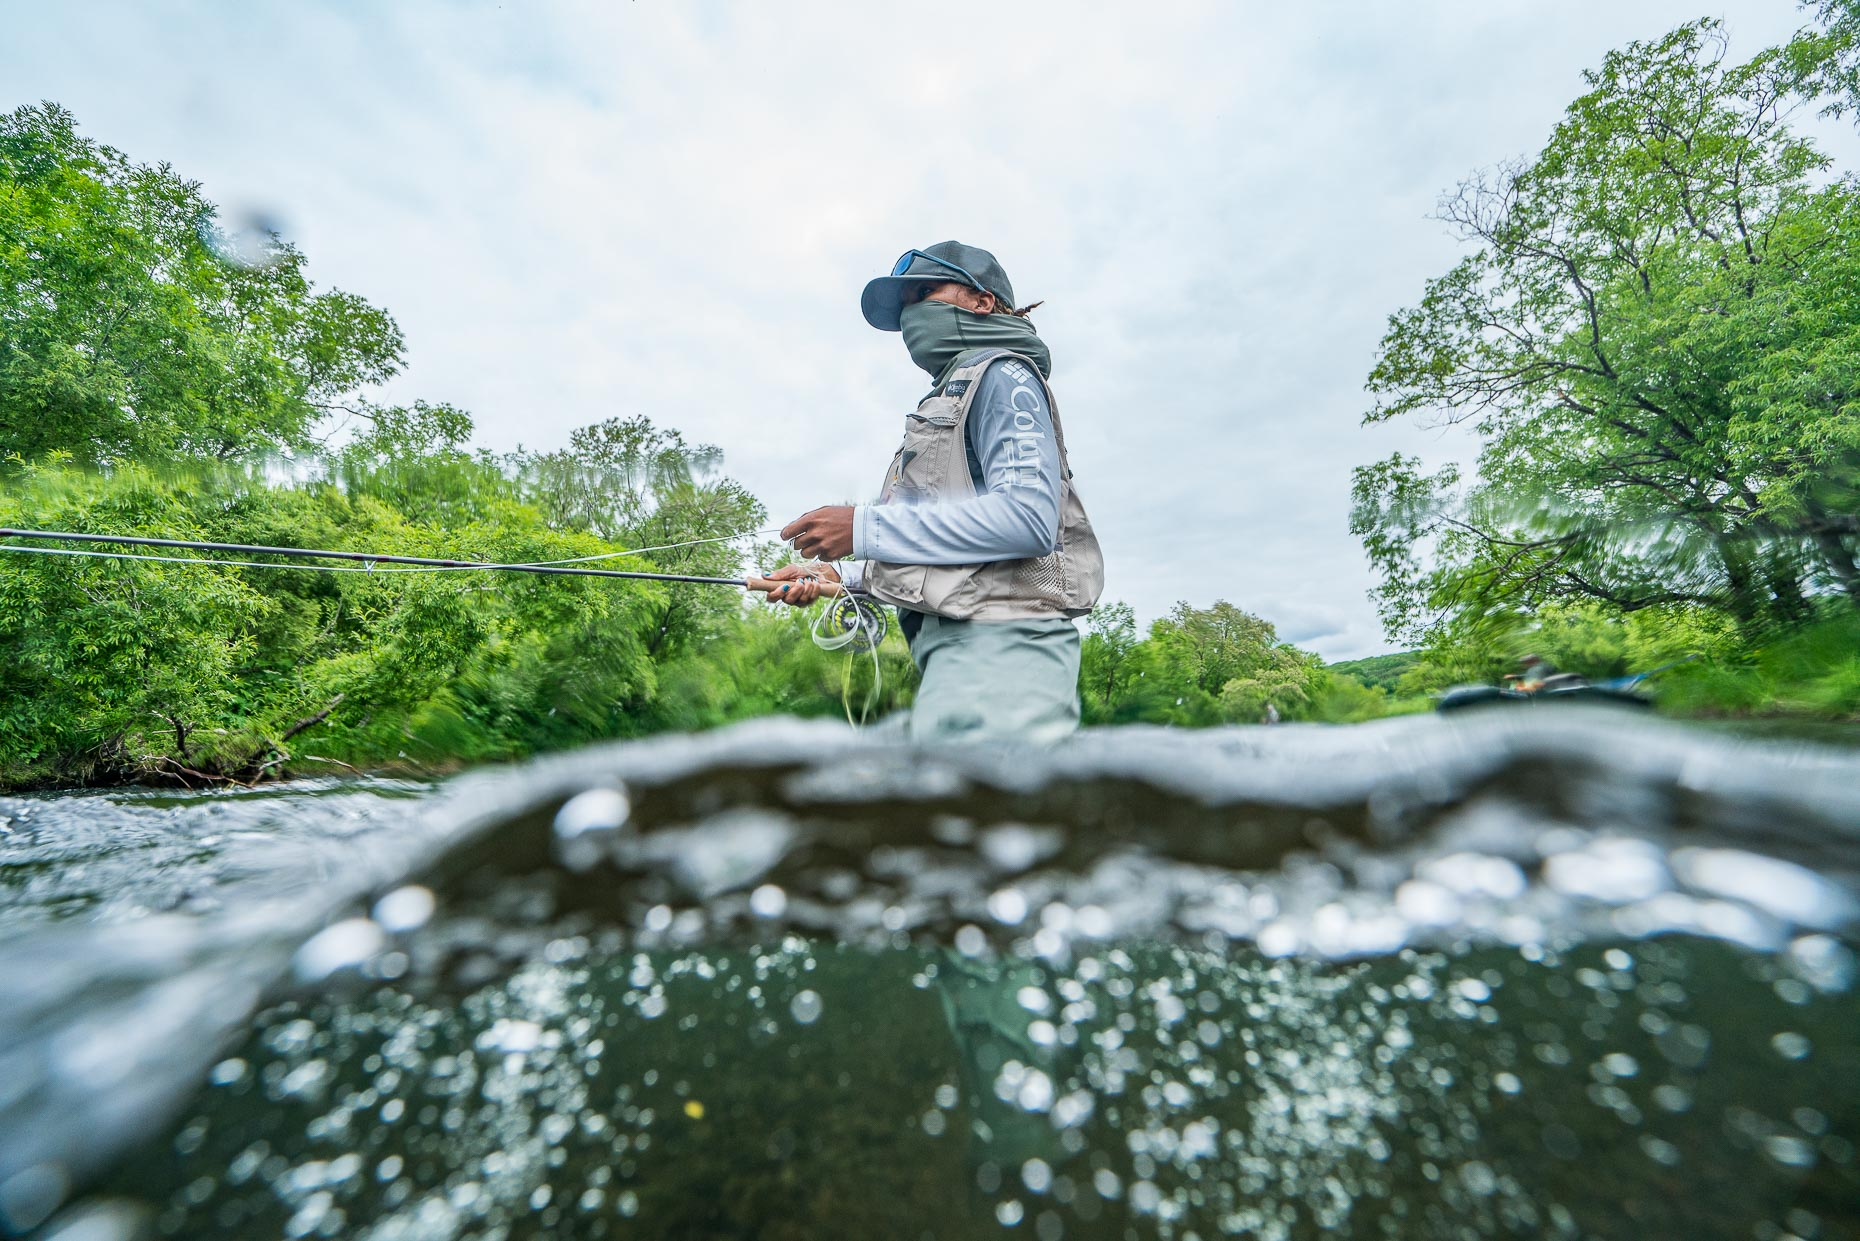 CamMcLeod_Adventure_Flyfishing_01